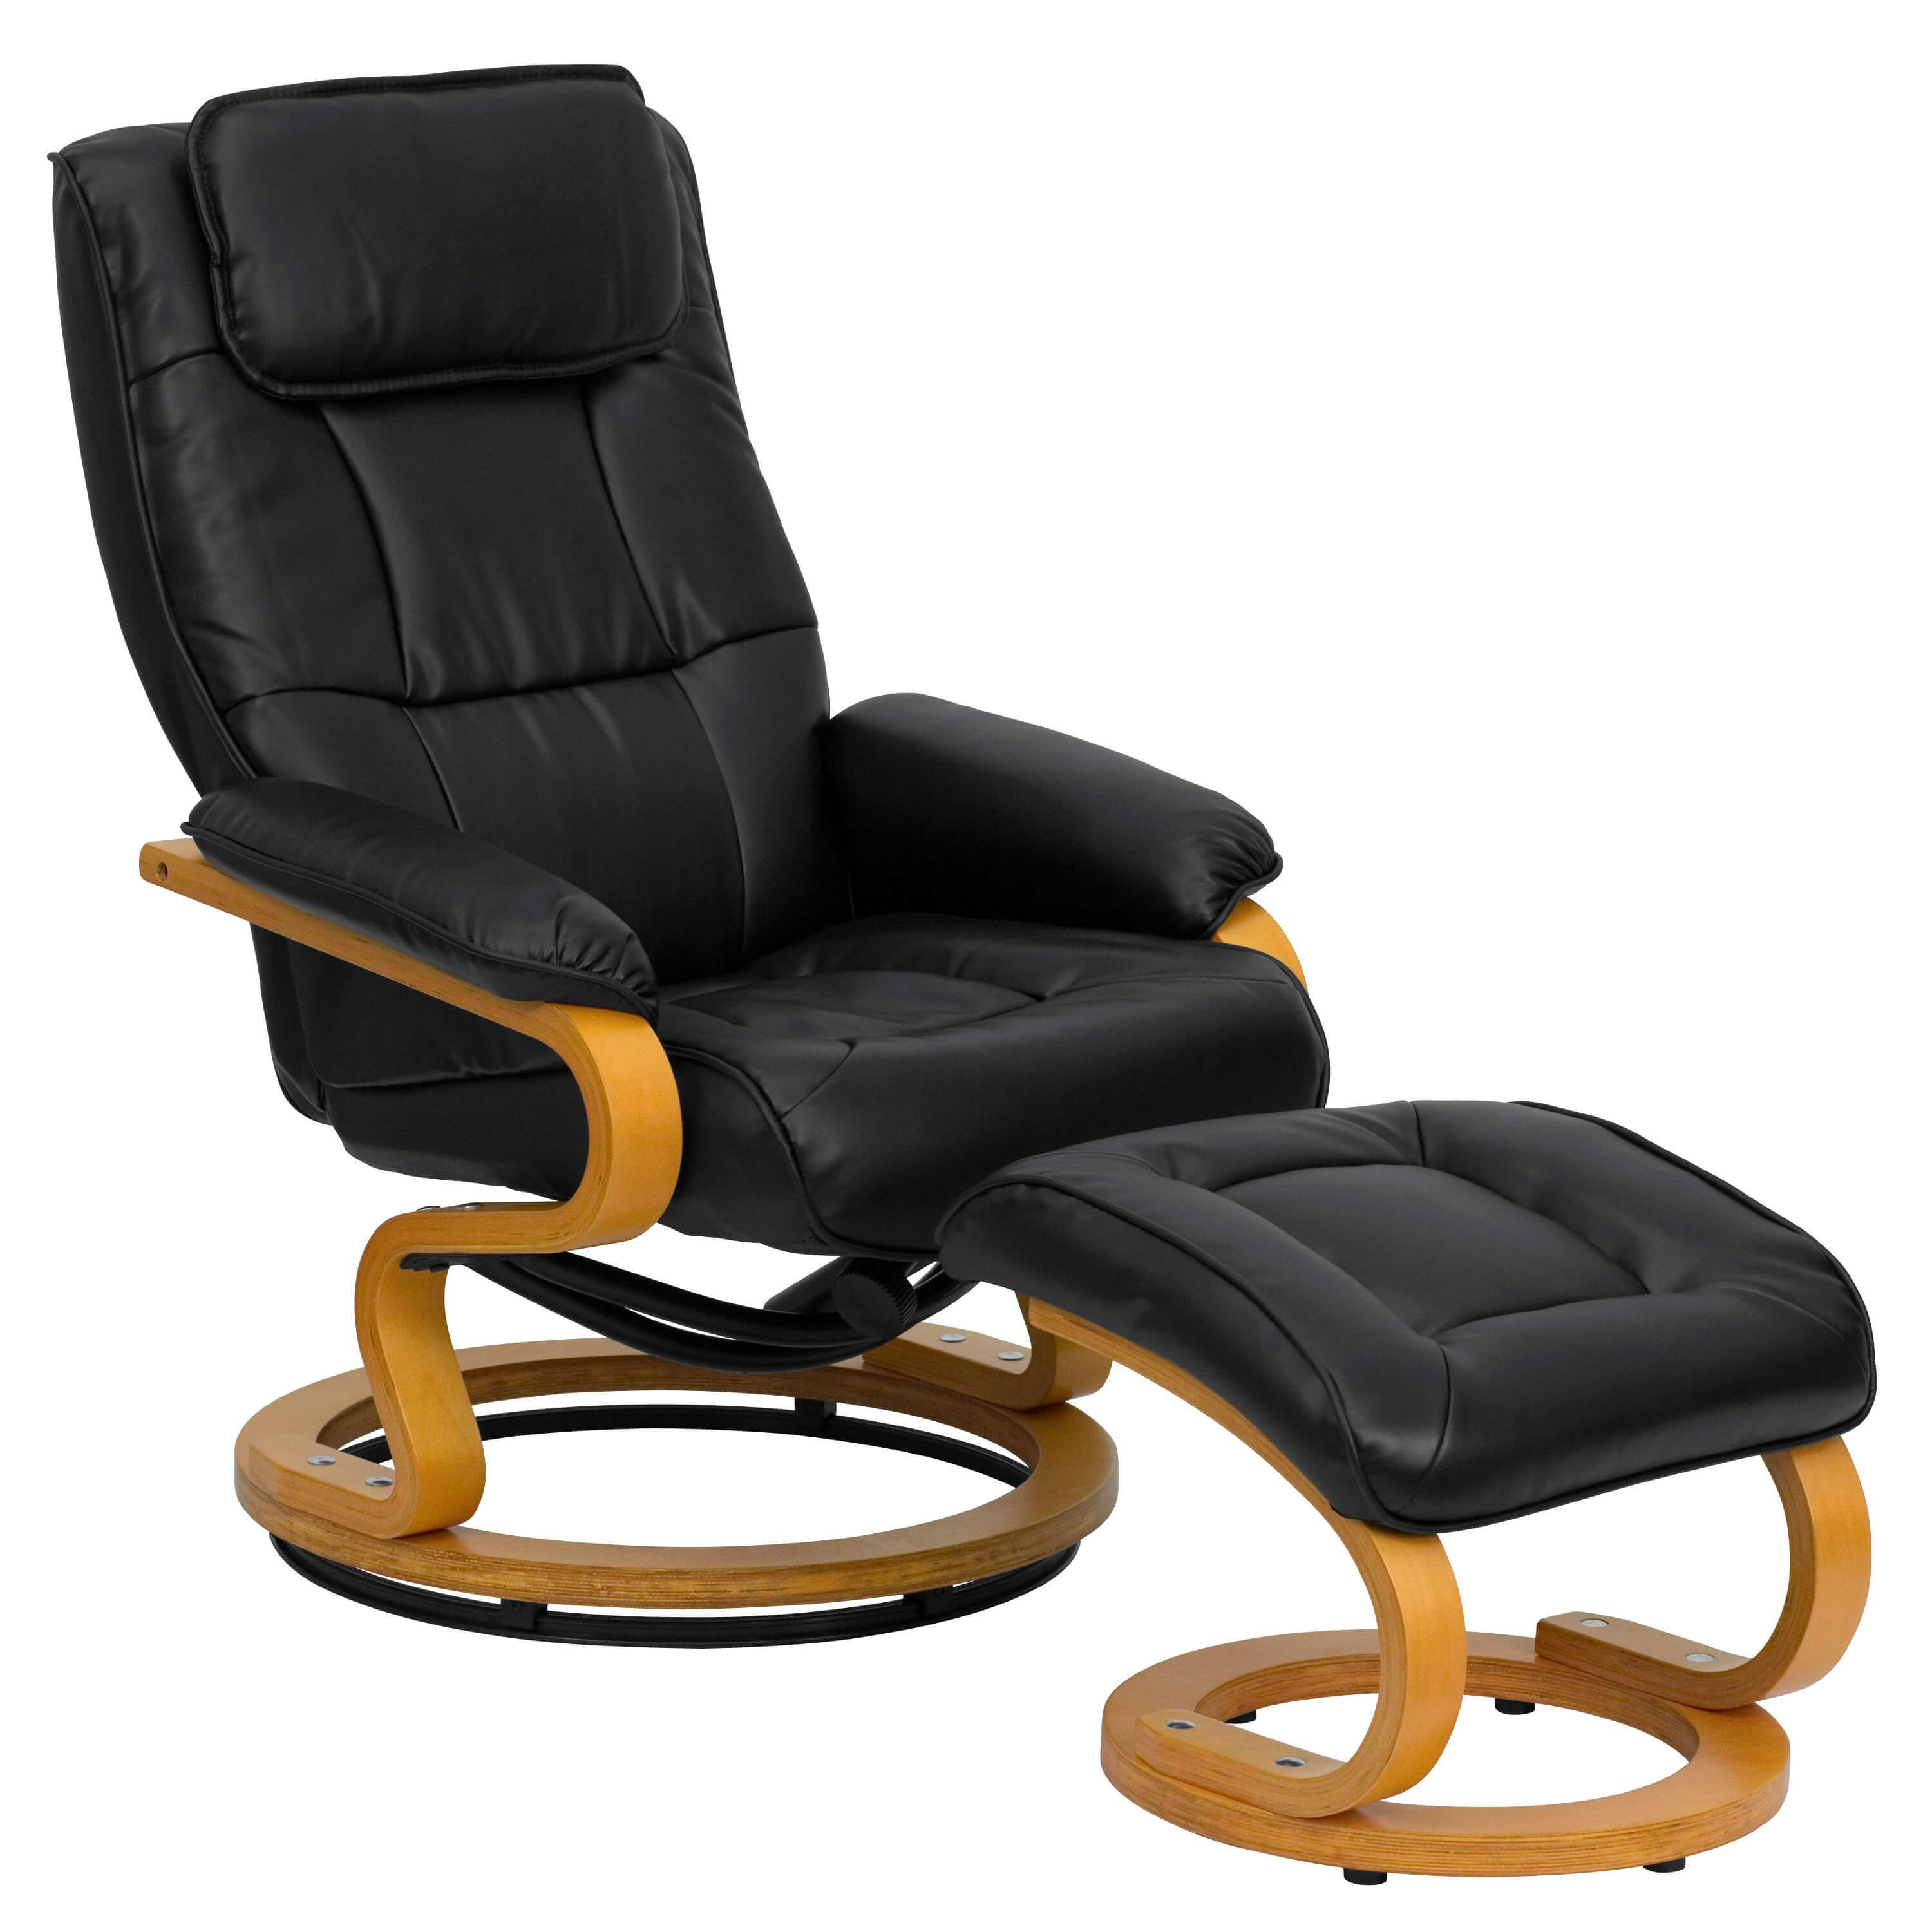 Contemporary Recliners High Back Recliner Chair